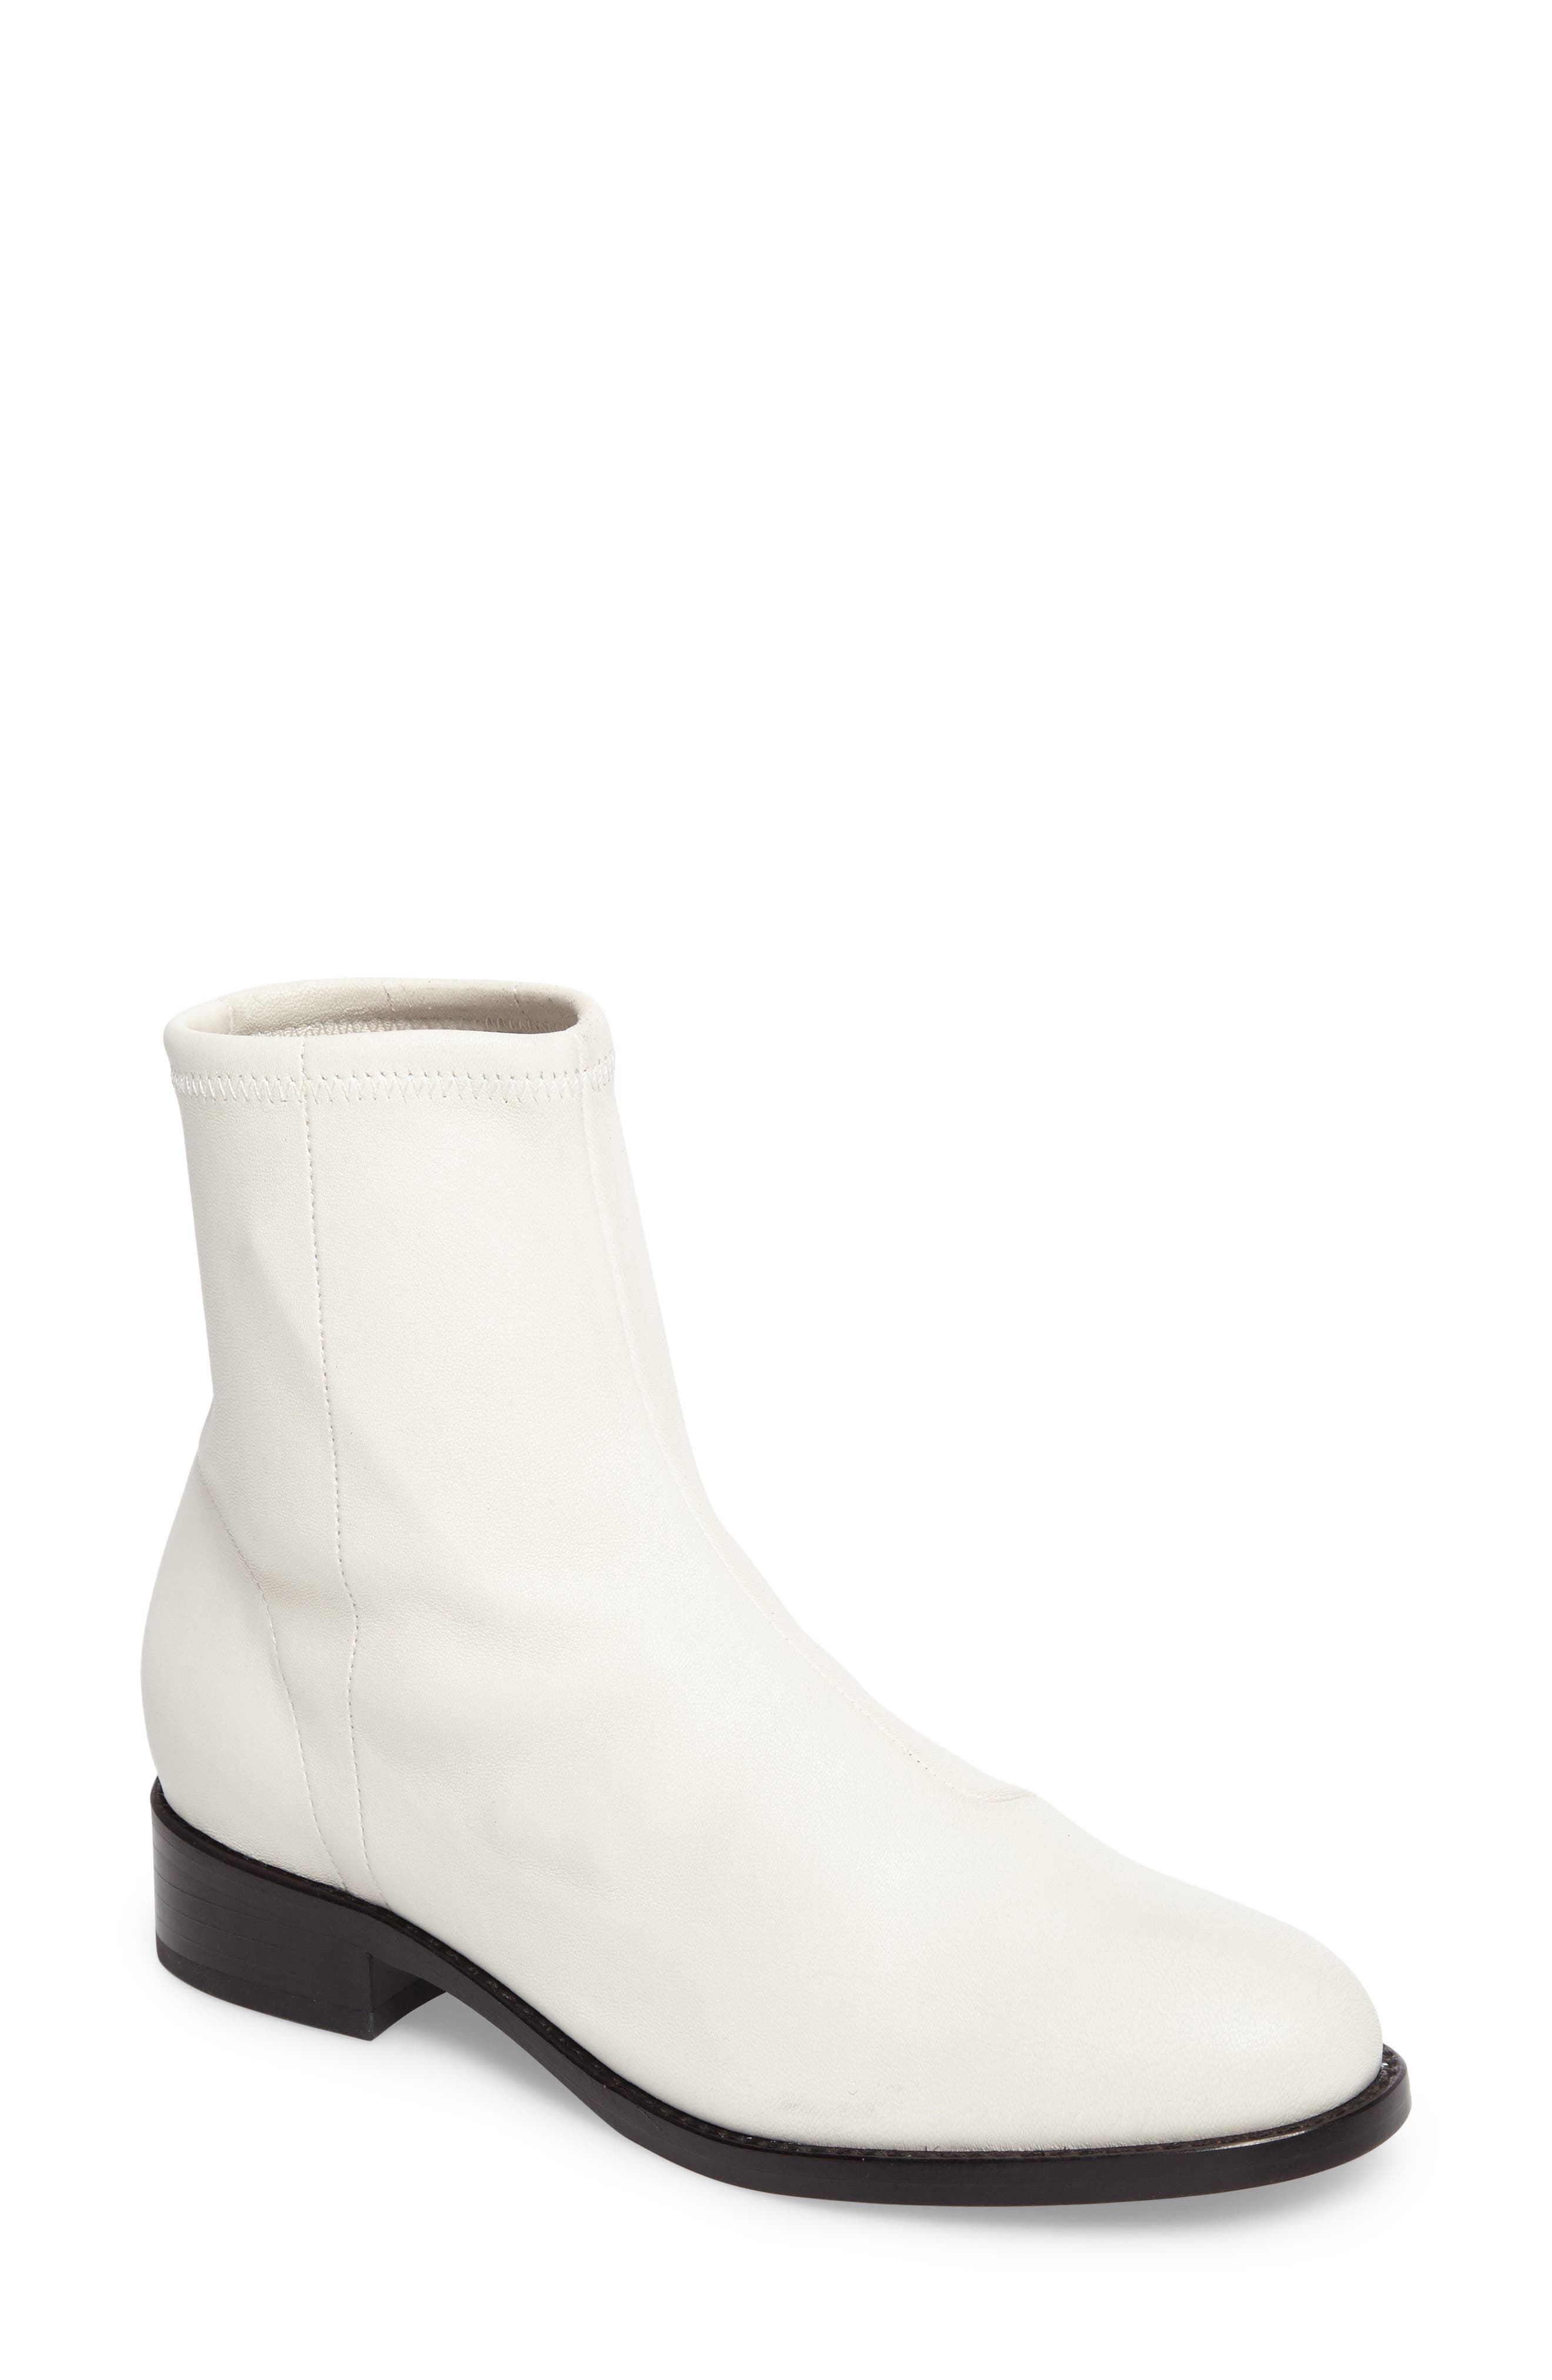 Opening Ceremony Leathers DANI BOOT